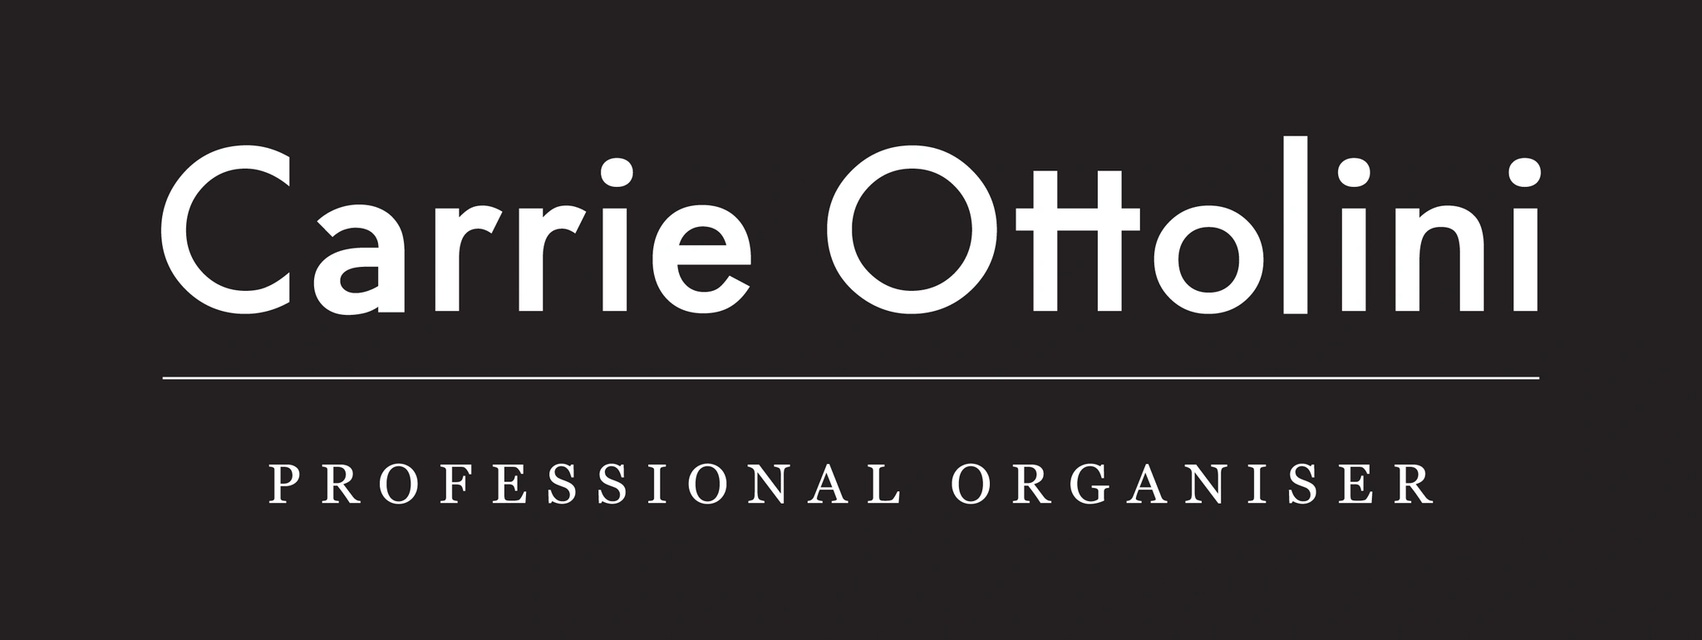 Carrie Ottolini Professional Organiser